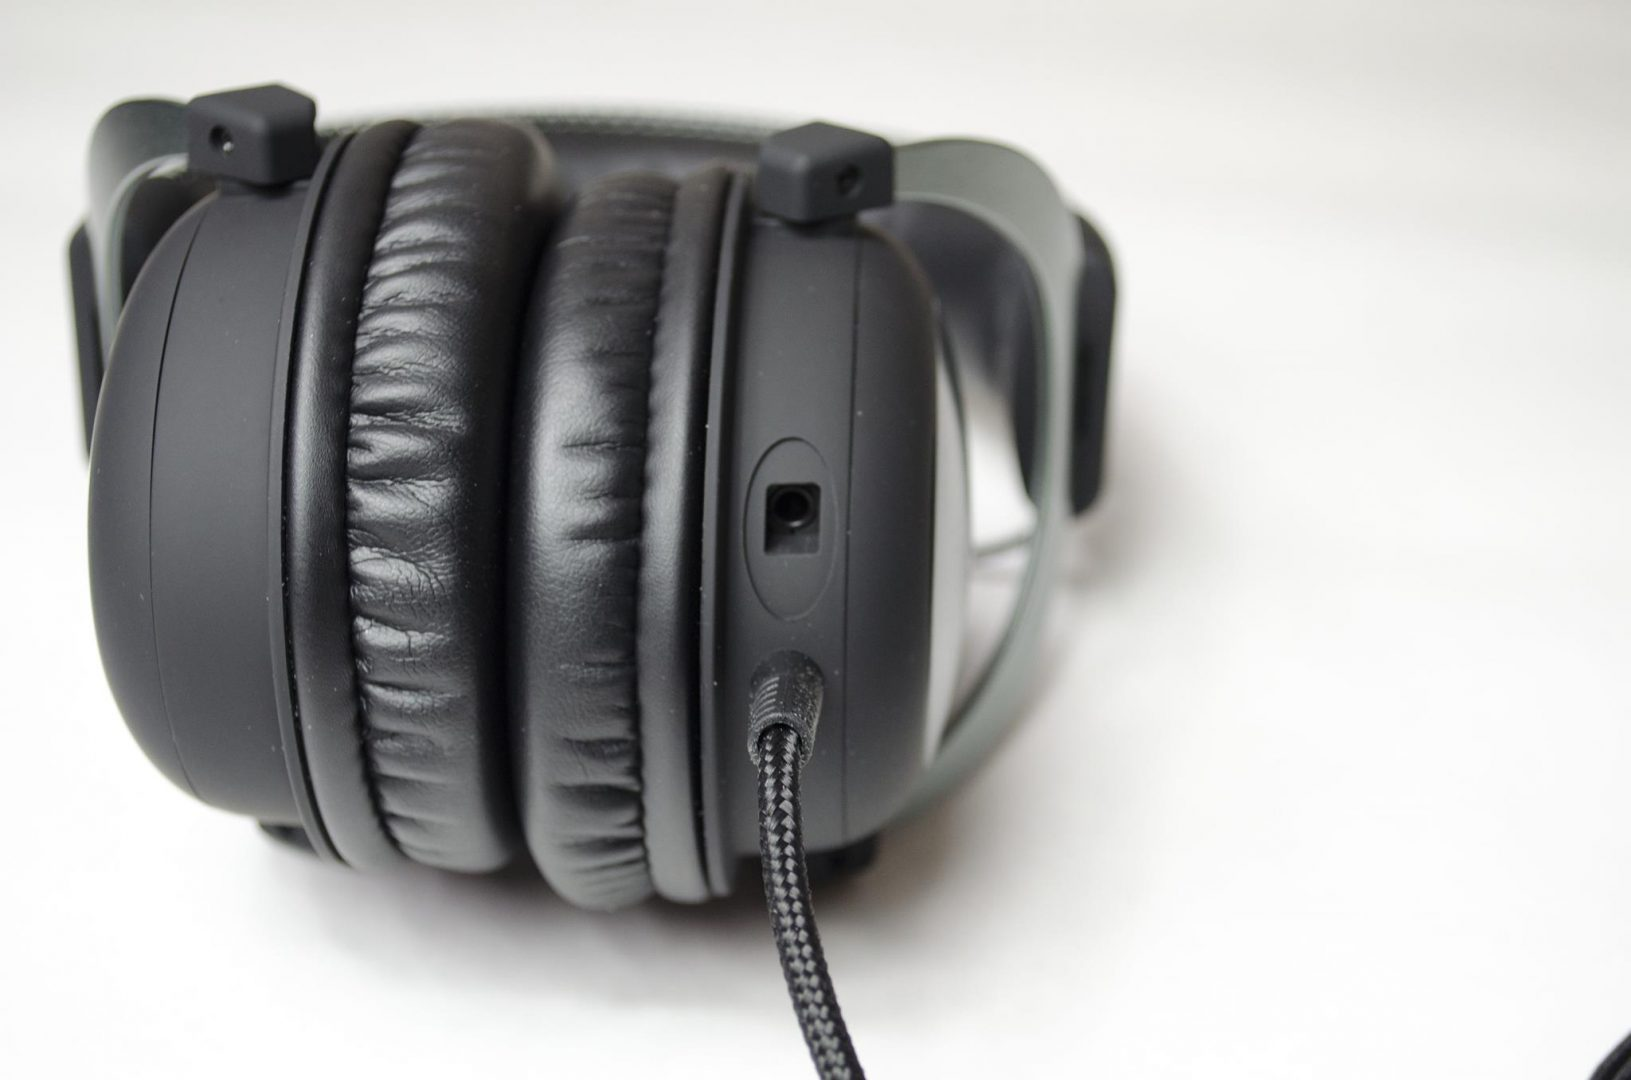 hyperx cloud ii headphones review_10